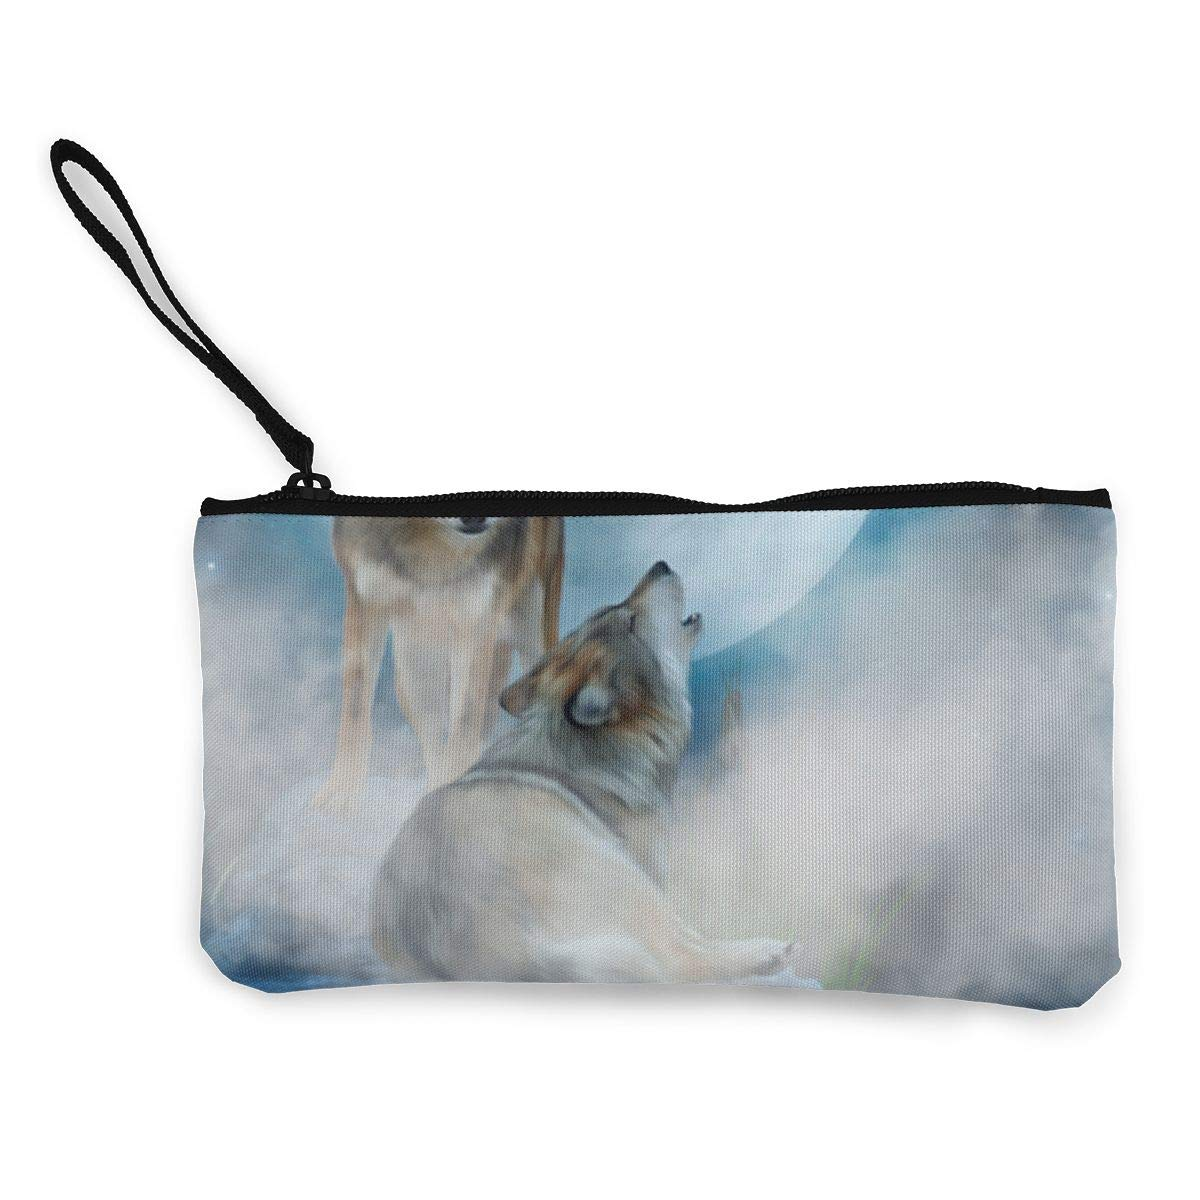 Coin Purse Cute Rabbit Happy Easter Coin Pouch With Zipper,Make Up Bag,Wallet Bag Change Pouch Key Holder